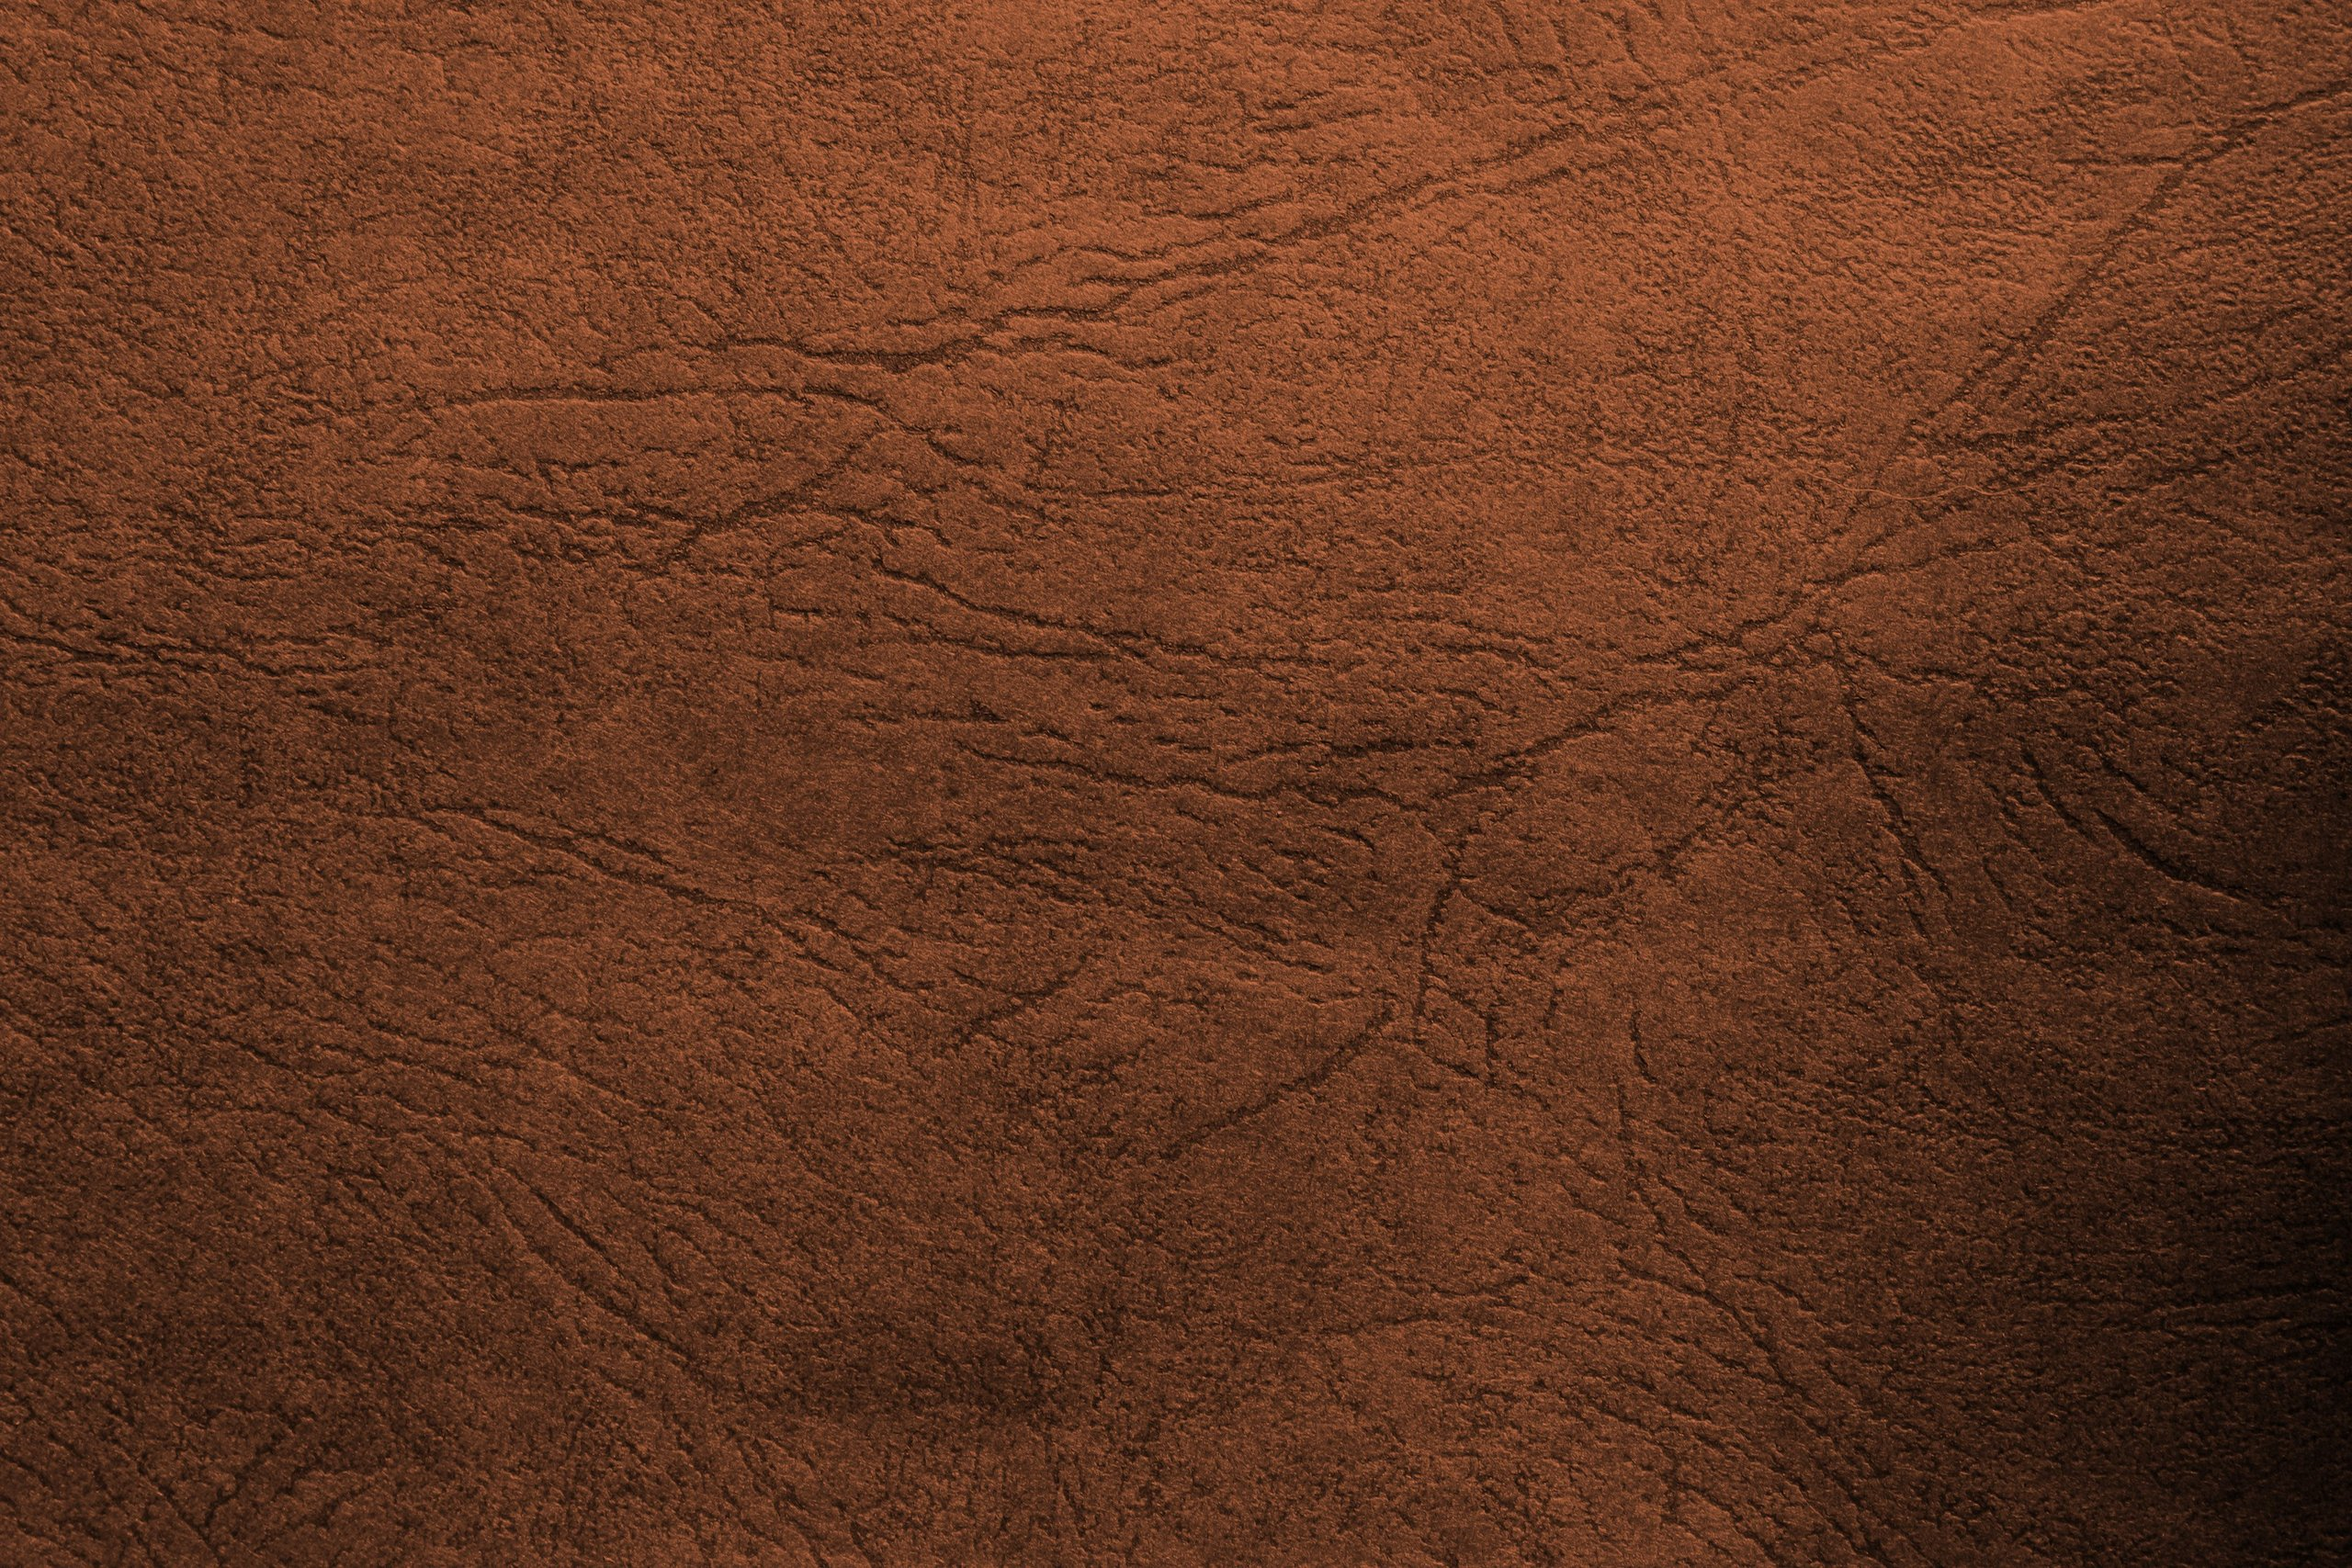 Brown Brown Leather Wallpaper 2560x1707